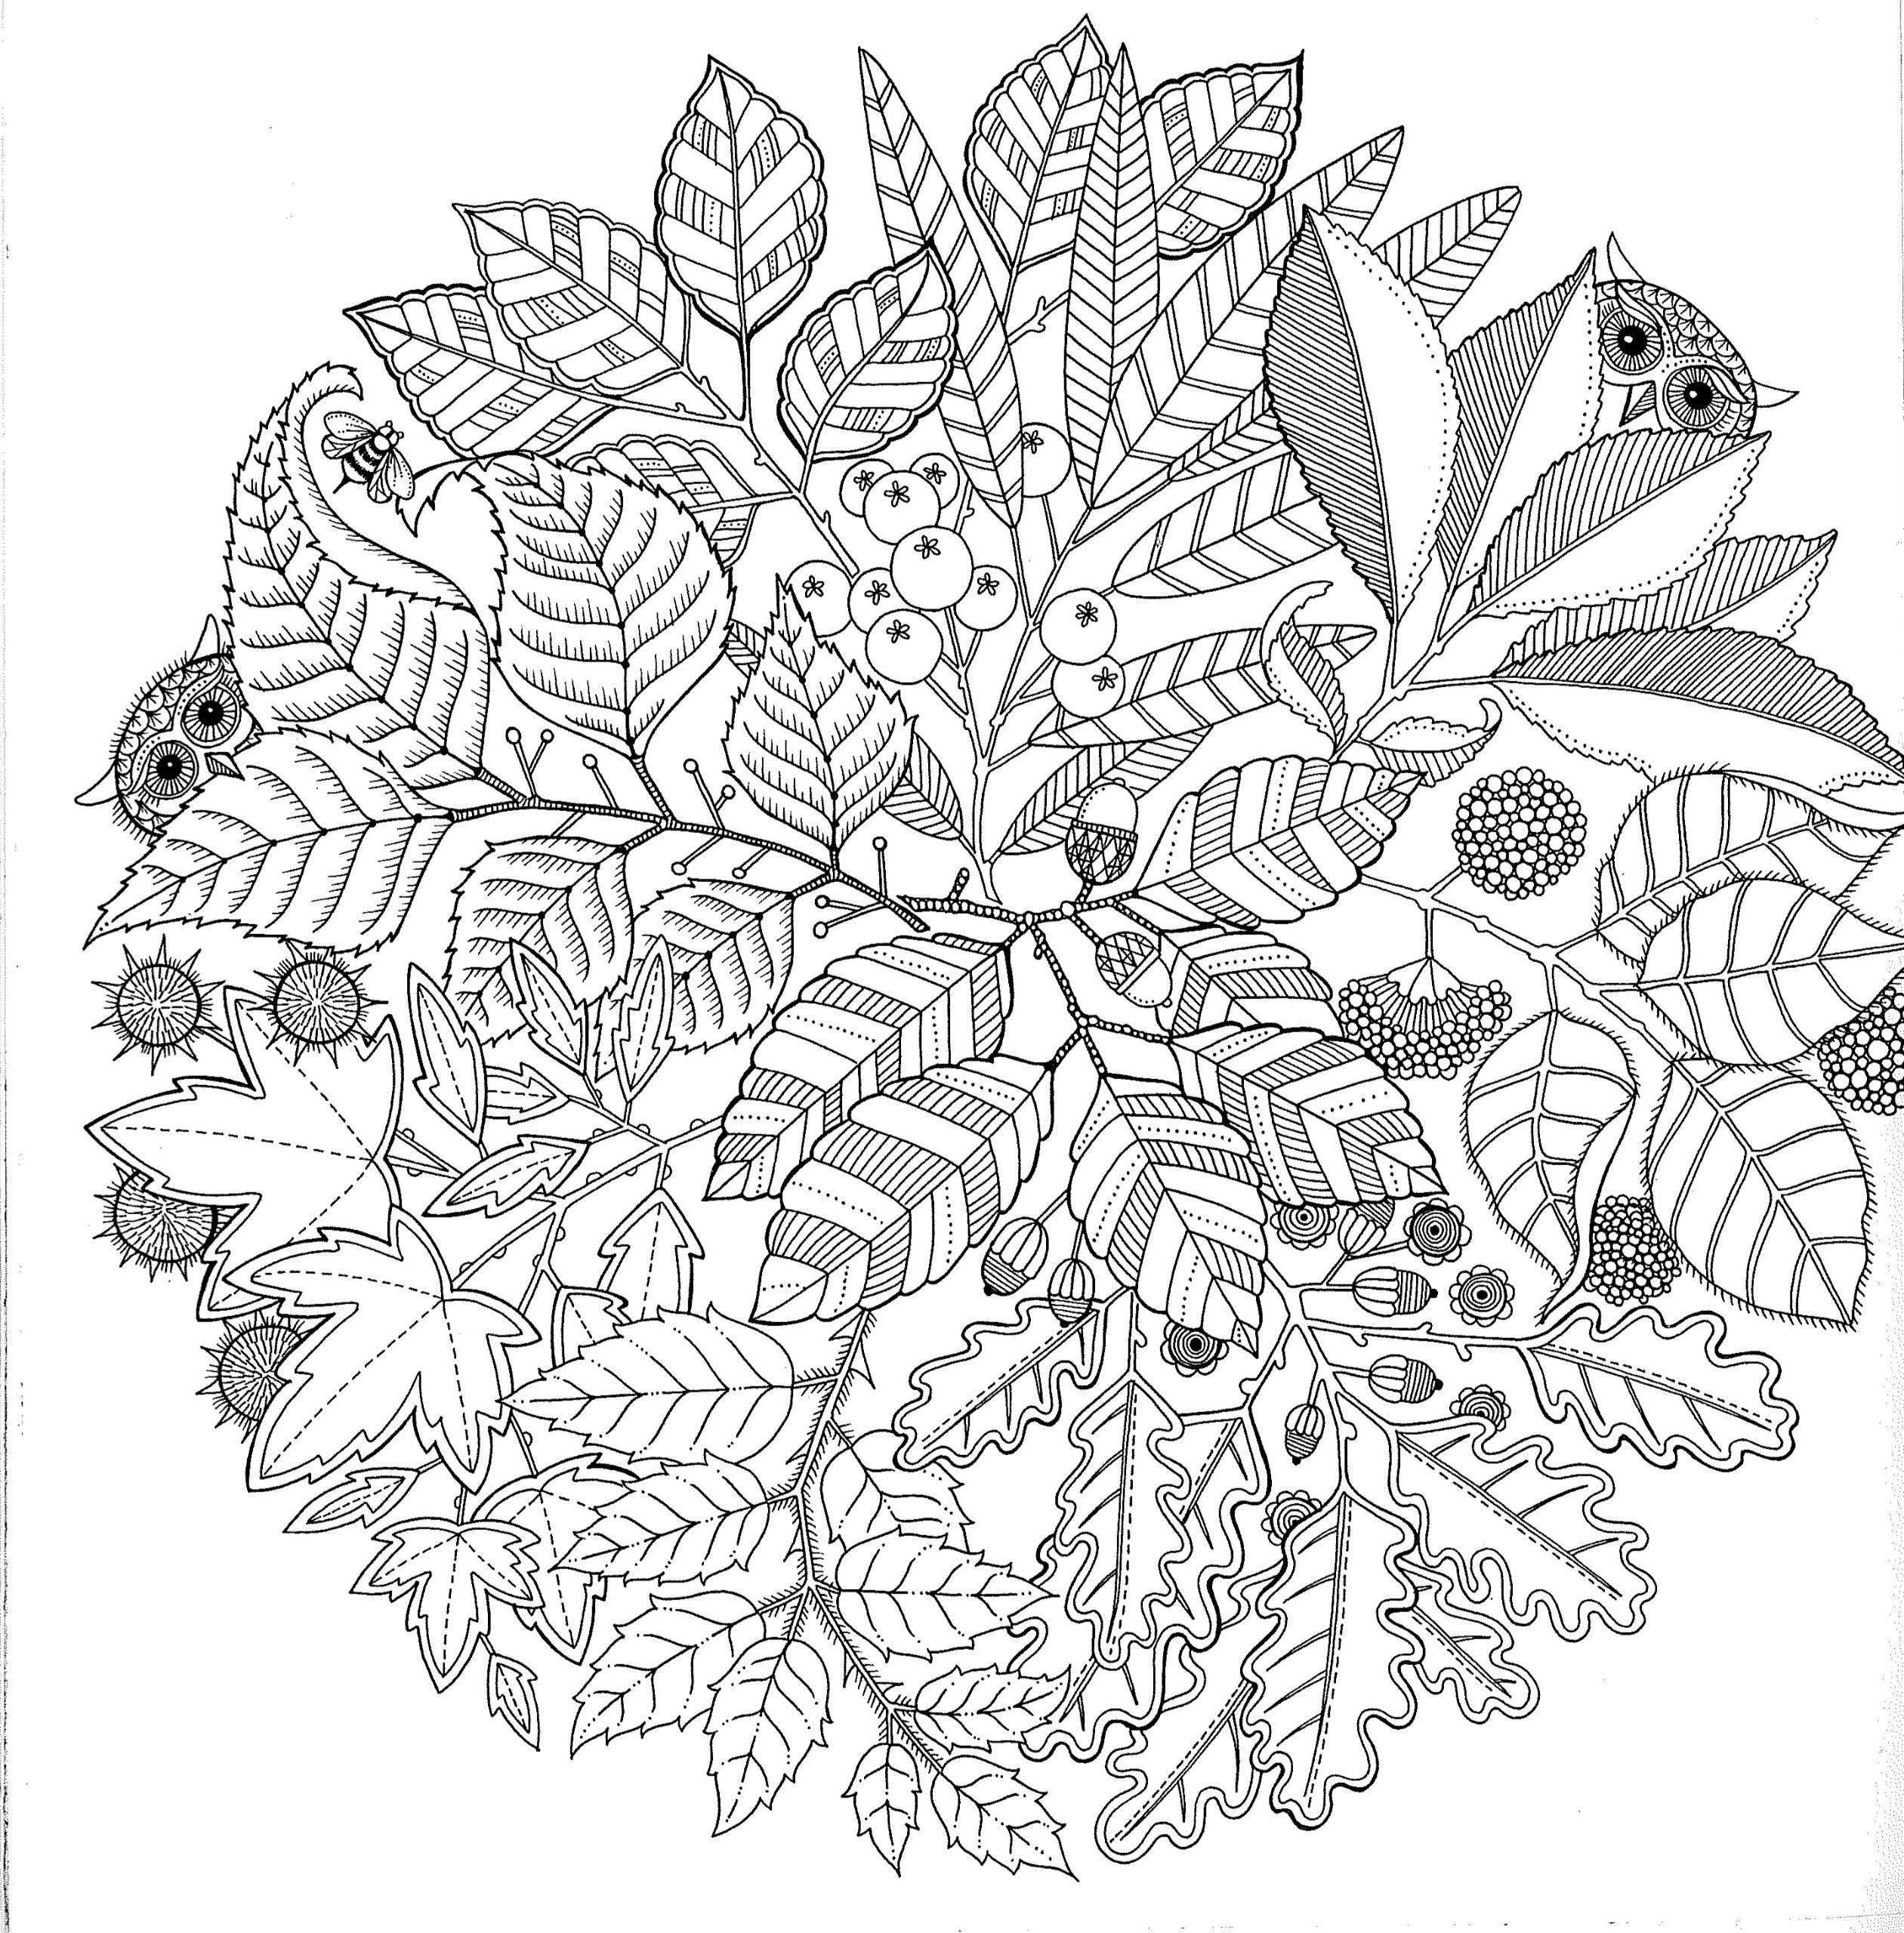 Coloring Book For Adults  Free Printable Abstract Coloring Pages for Adults